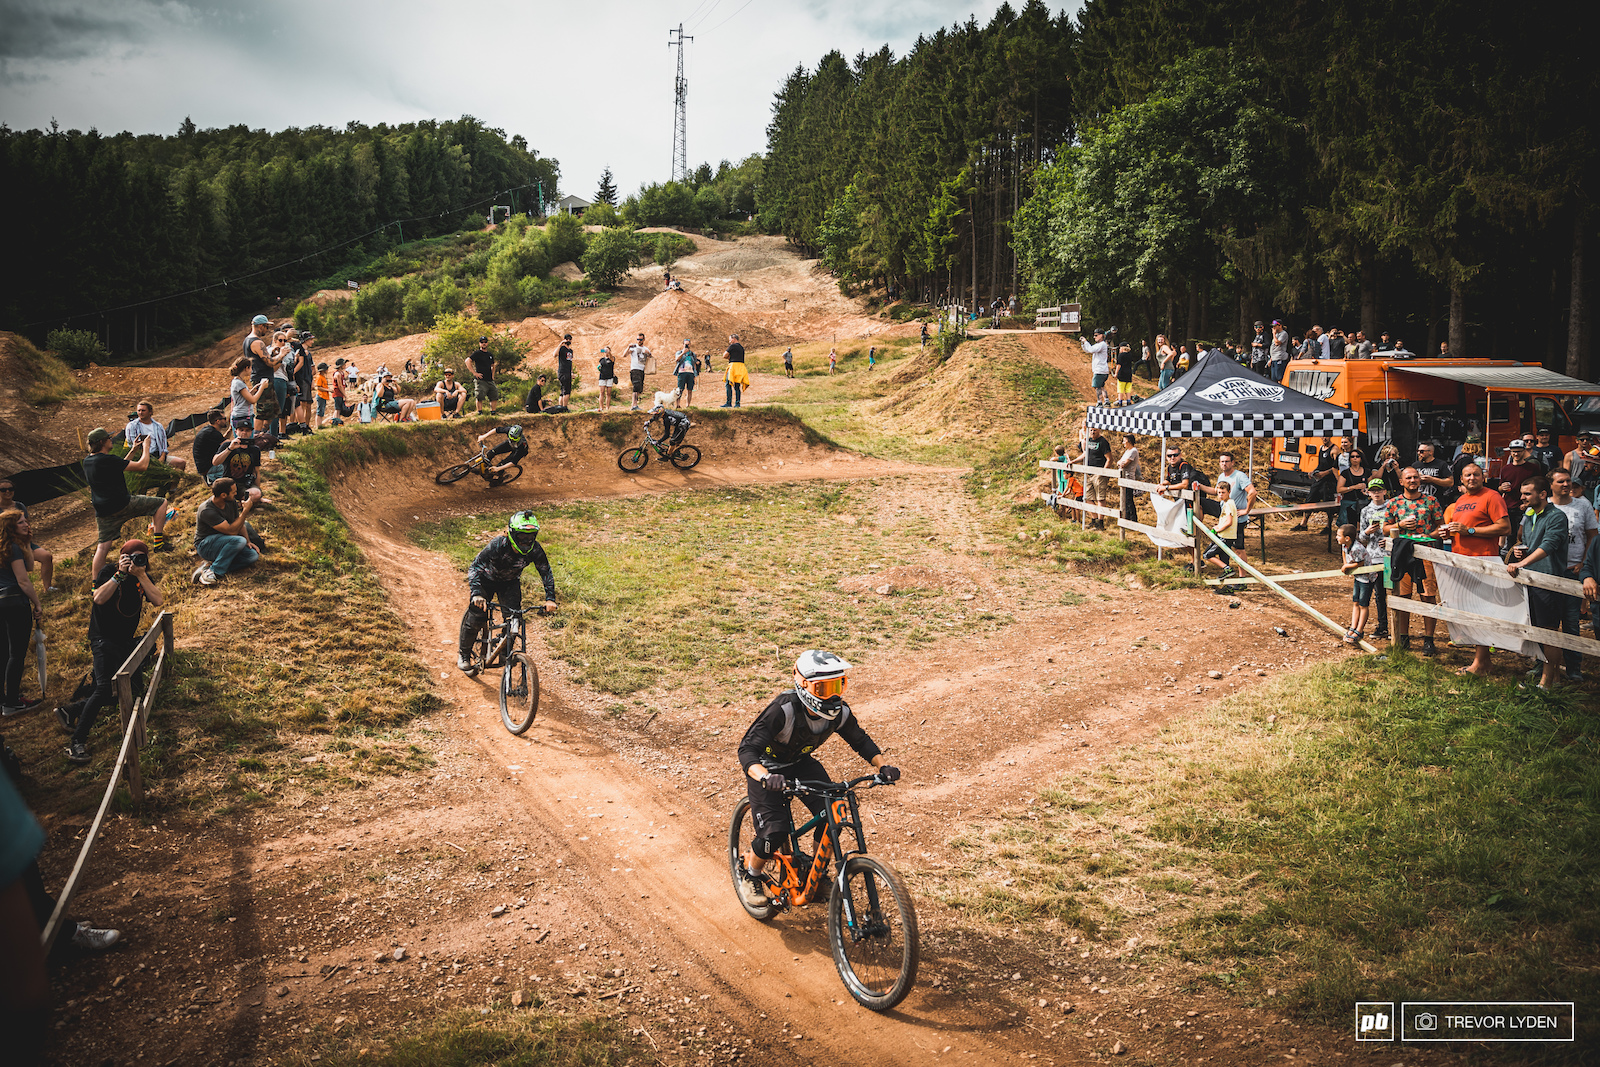 The Loose Riders mega train had around 100 riders descending the hills of the bike park.